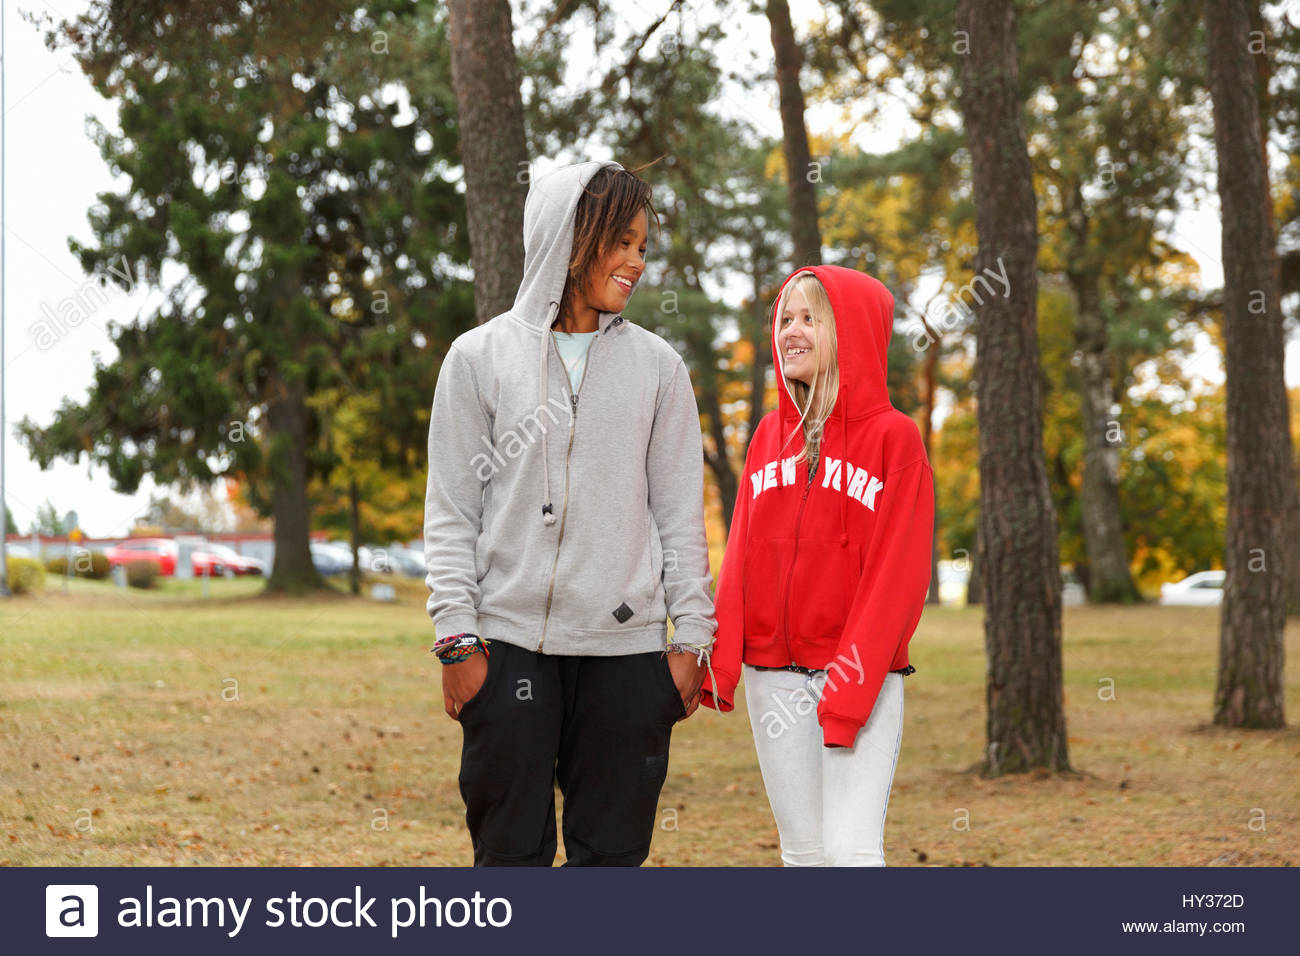 Sweden, Sodermanland, Jarna, Girls (12-13) with hoods on chatting while walking among trees Stock Photo